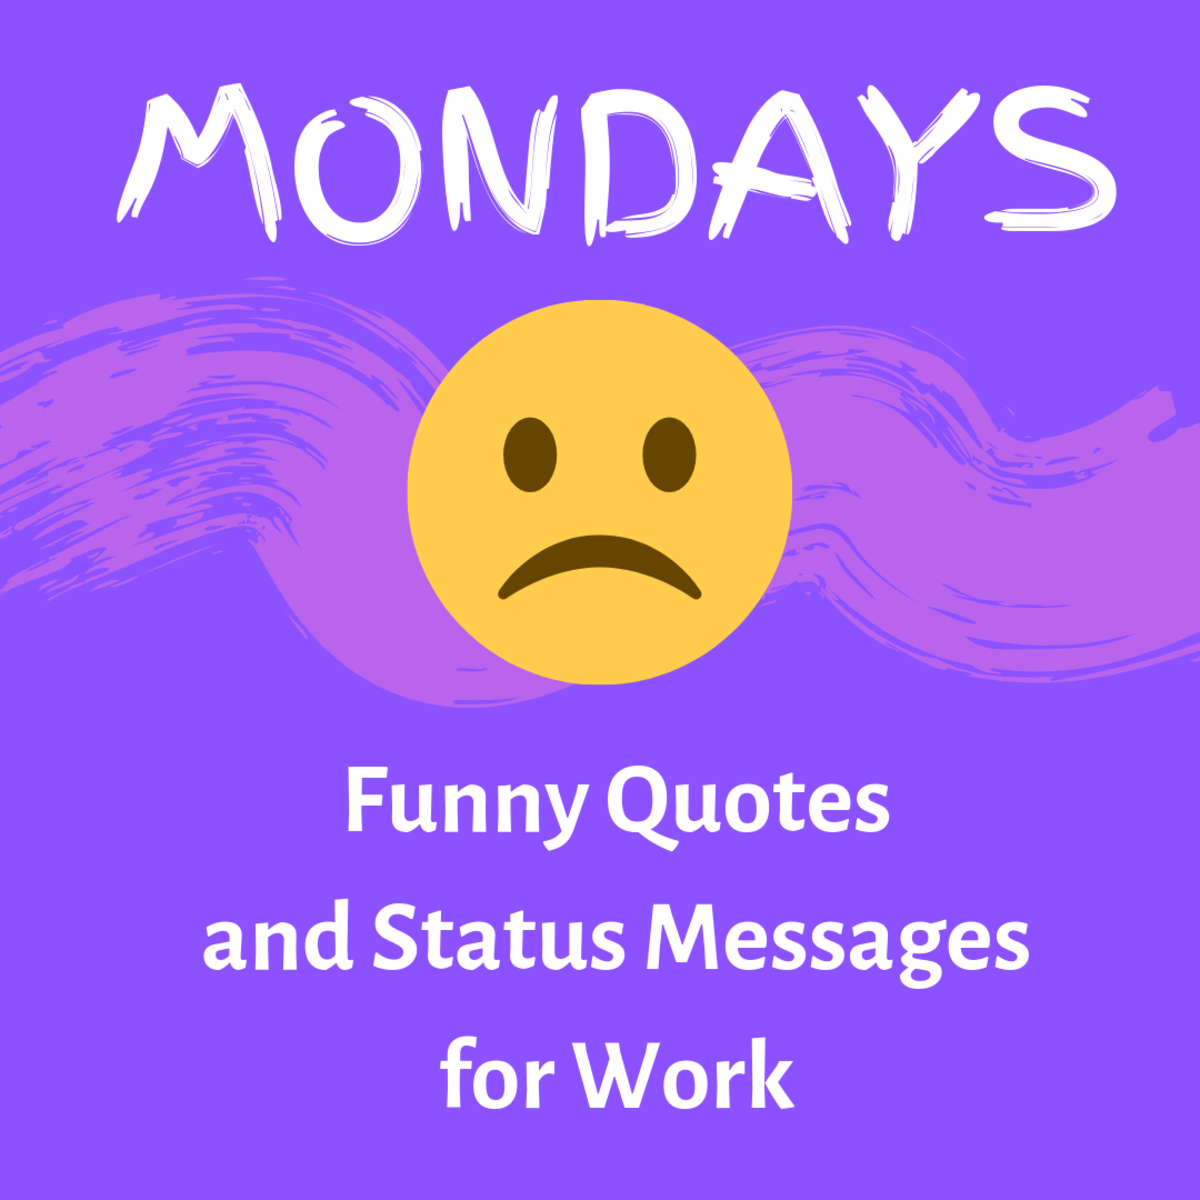 Funny Monday Quotes for Work: Statuses and Pictures ...